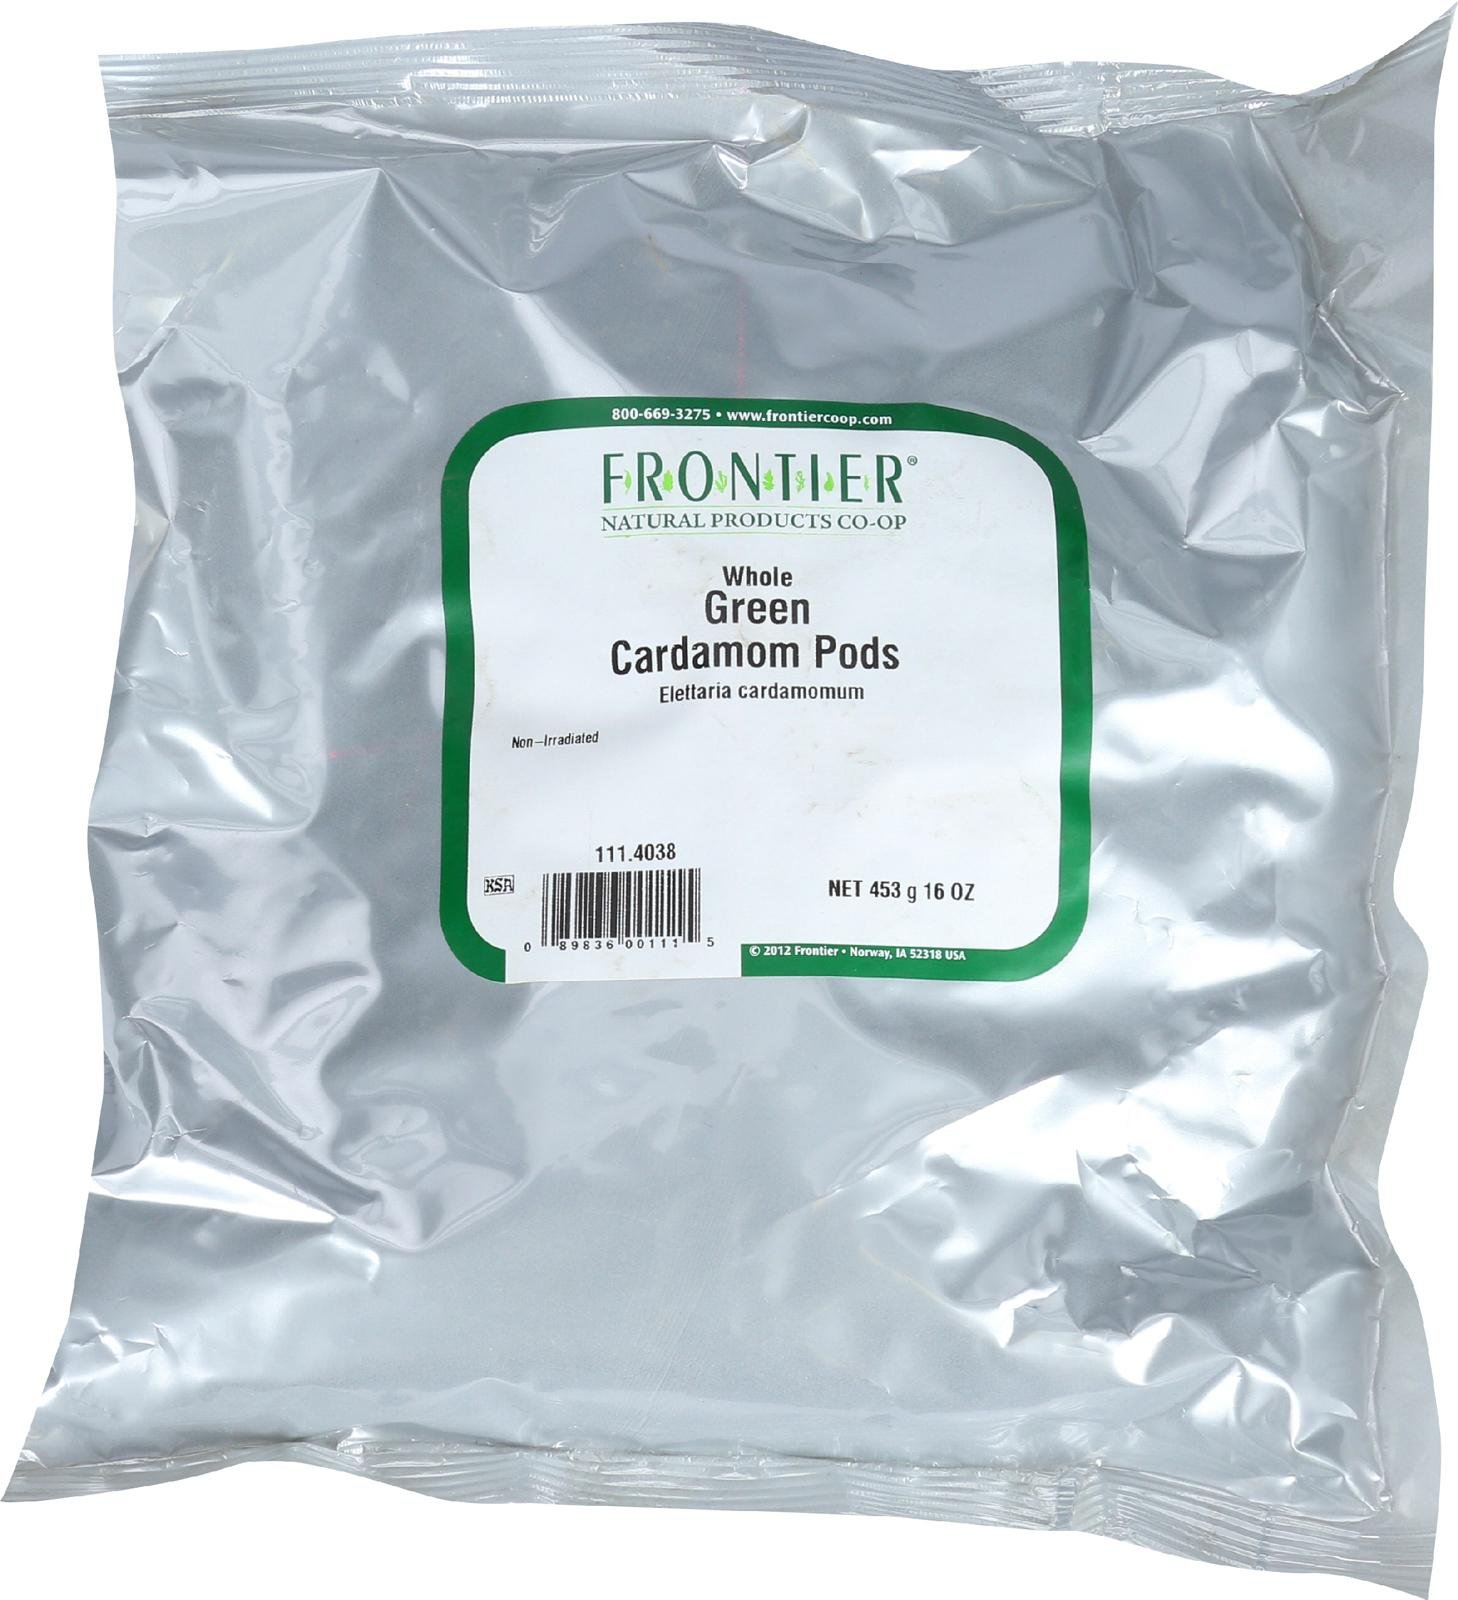 Frontier Cardamom Pods Whl/Green (1x1LB ) by Frontier Herb (Image #1)